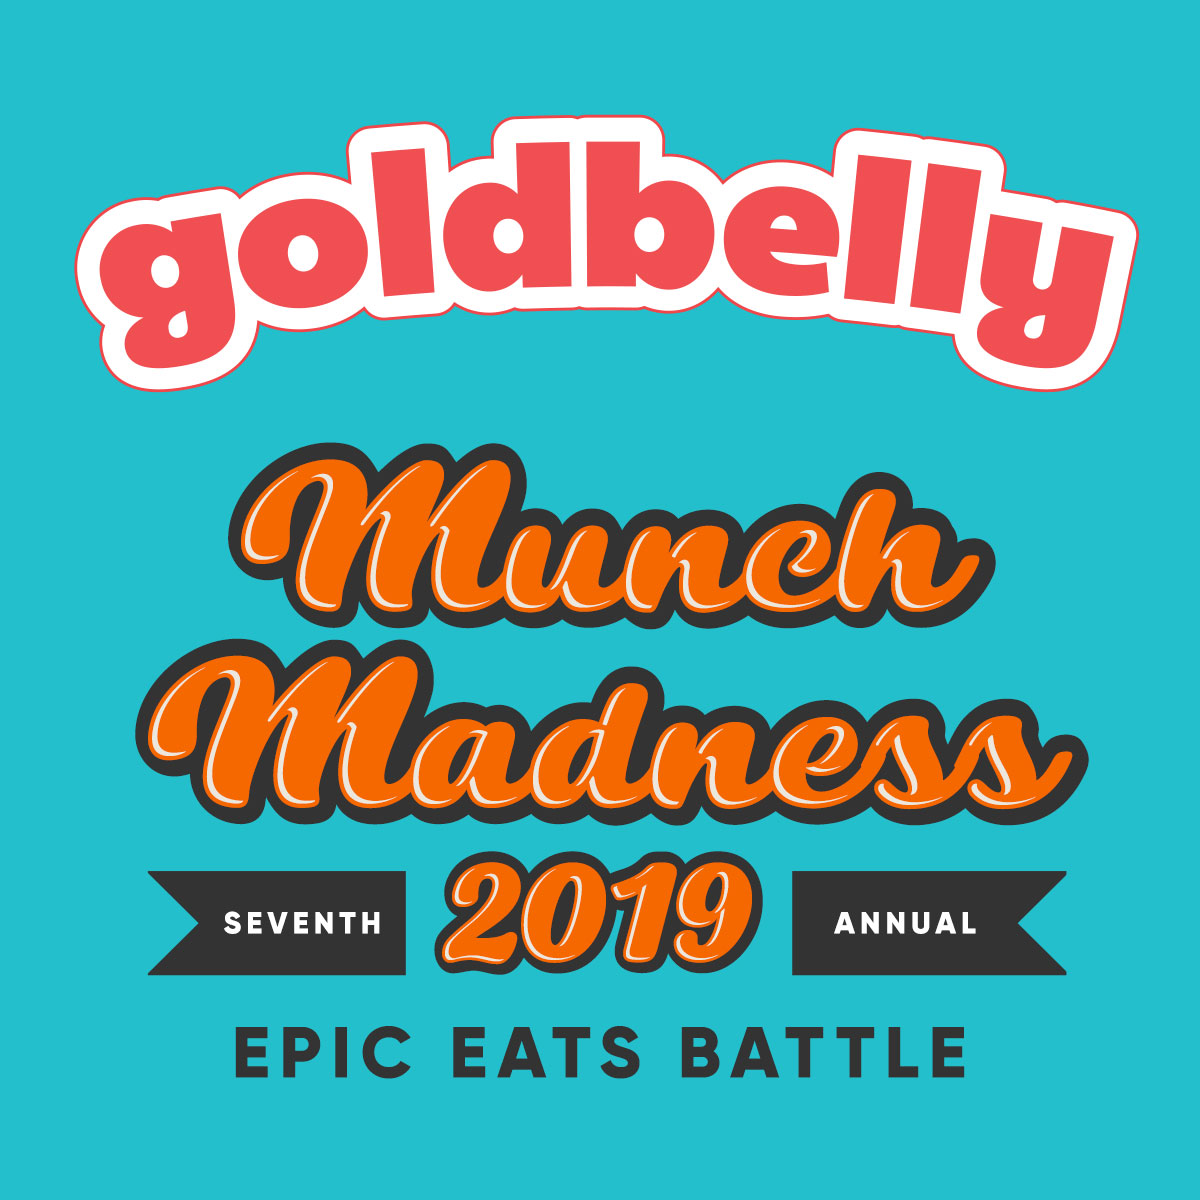 Goldbelly-Munch-Madness-Social-1200-Square-Teal-BG-V1-2.jpg